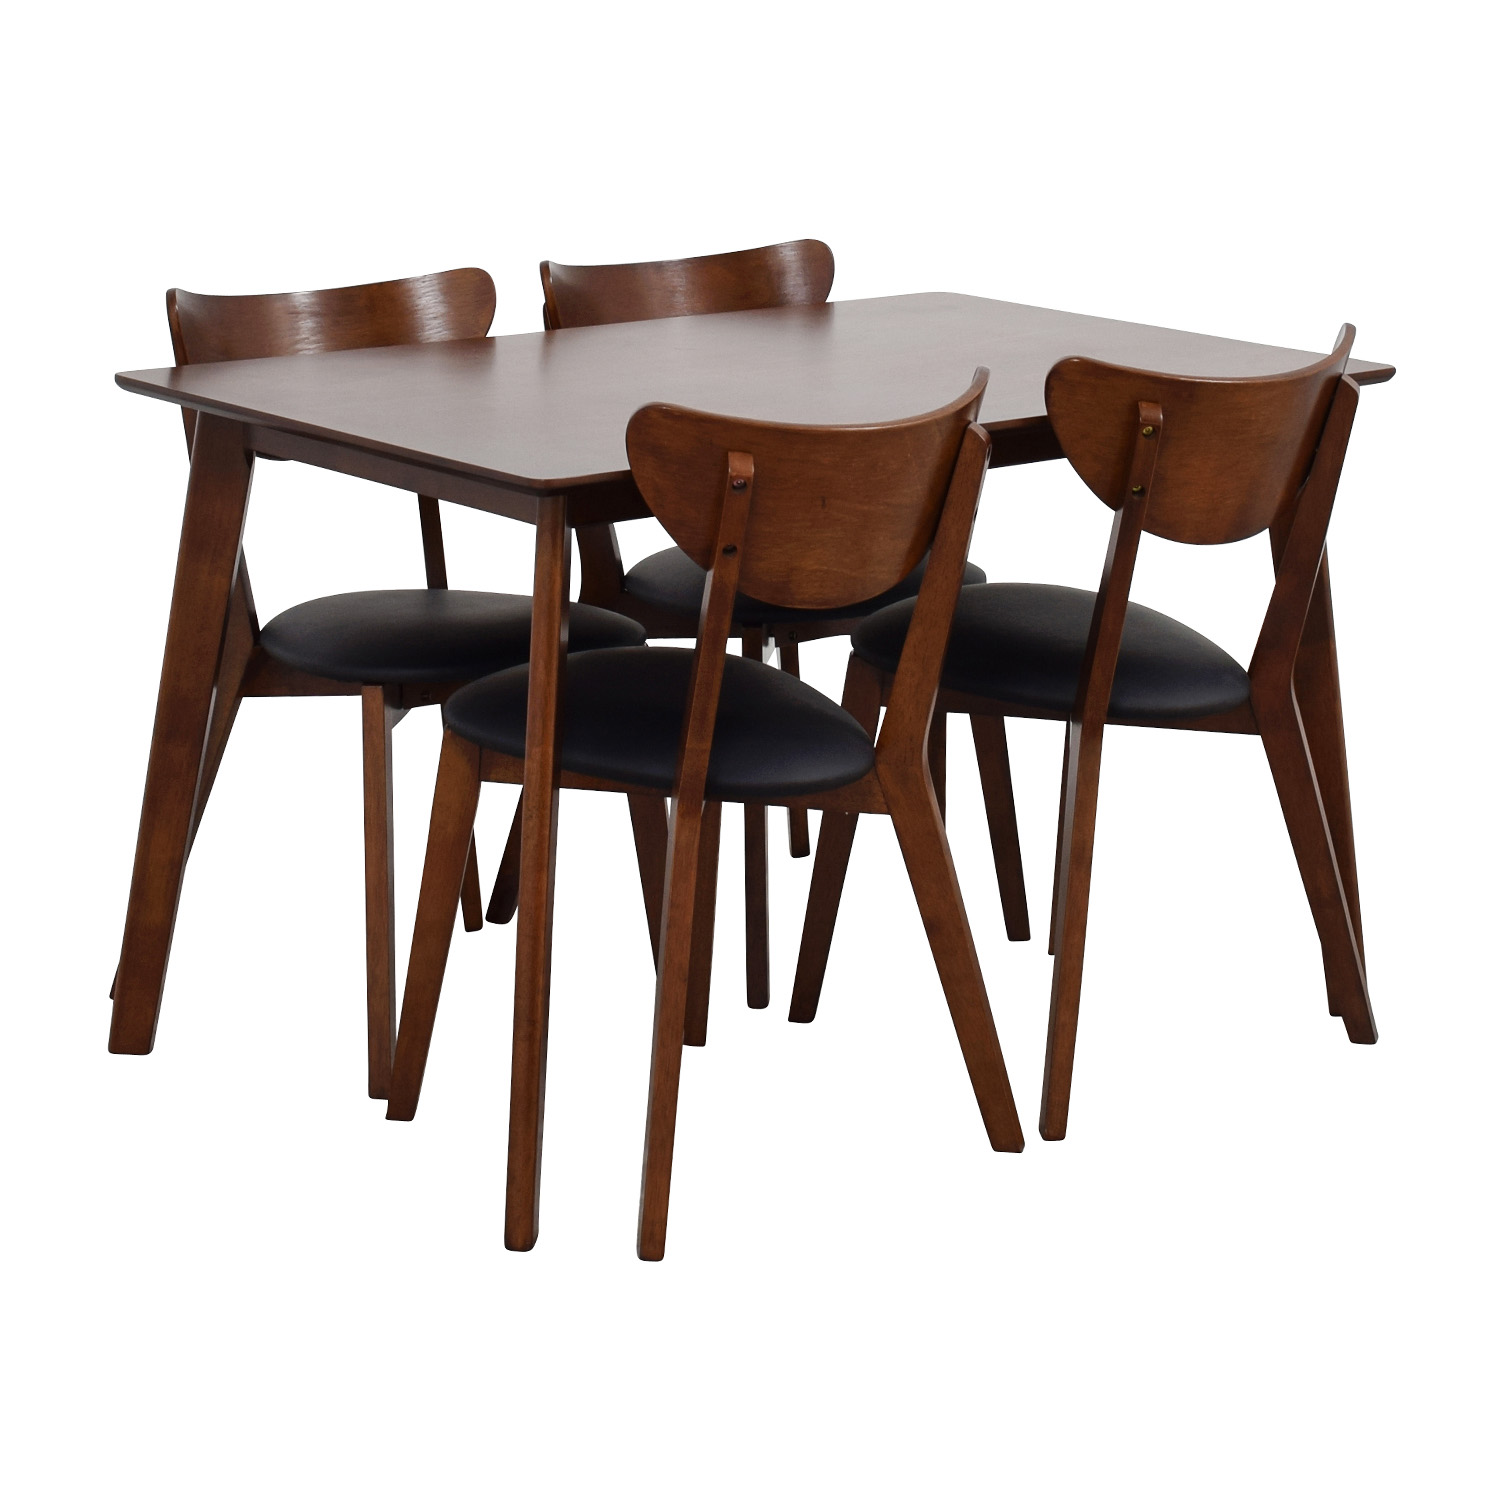 Wholesale Interiors Brown Dining Table Set with Four Chairs dimensions